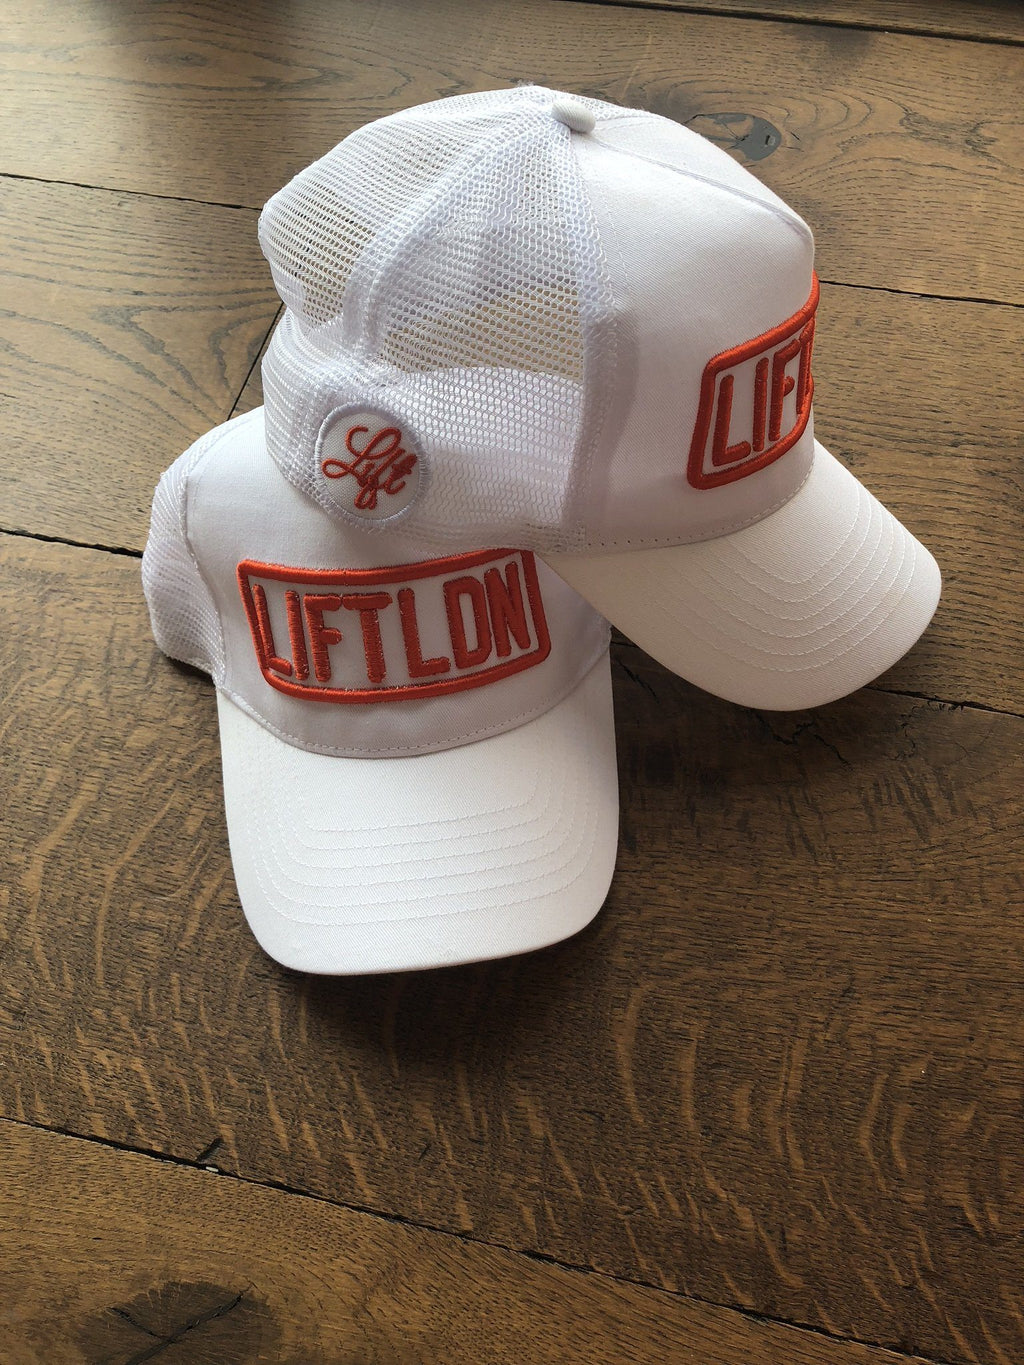 White Cap with Orange Logo 3D LIFTLDN Caps - LIFT-IT Worldwide